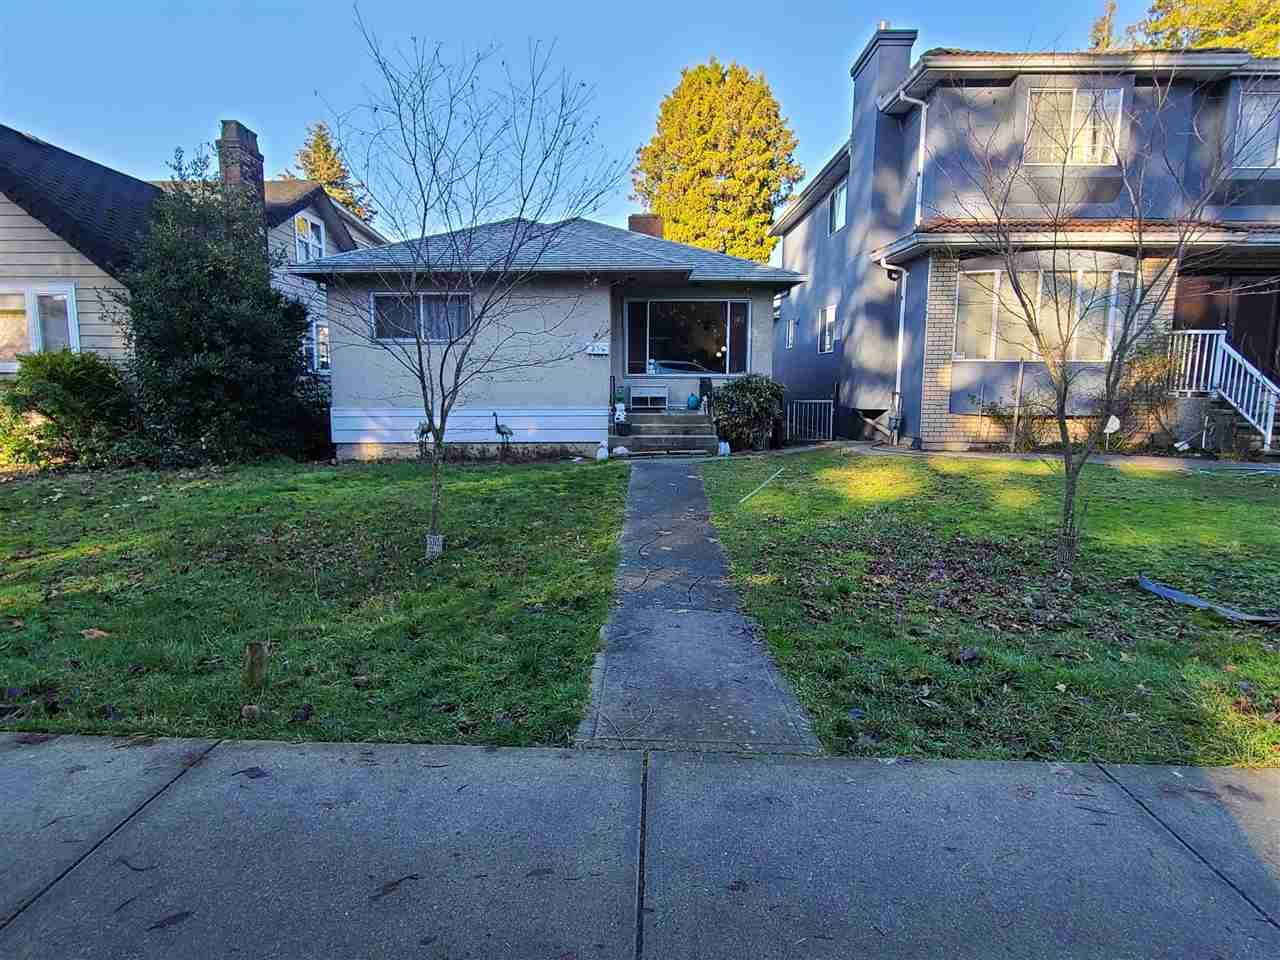 Main Photo: 35 W 49TH Avenue in Vancouver: Oakridge VW House for sale (Vancouver West)  : MLS®# R2530383